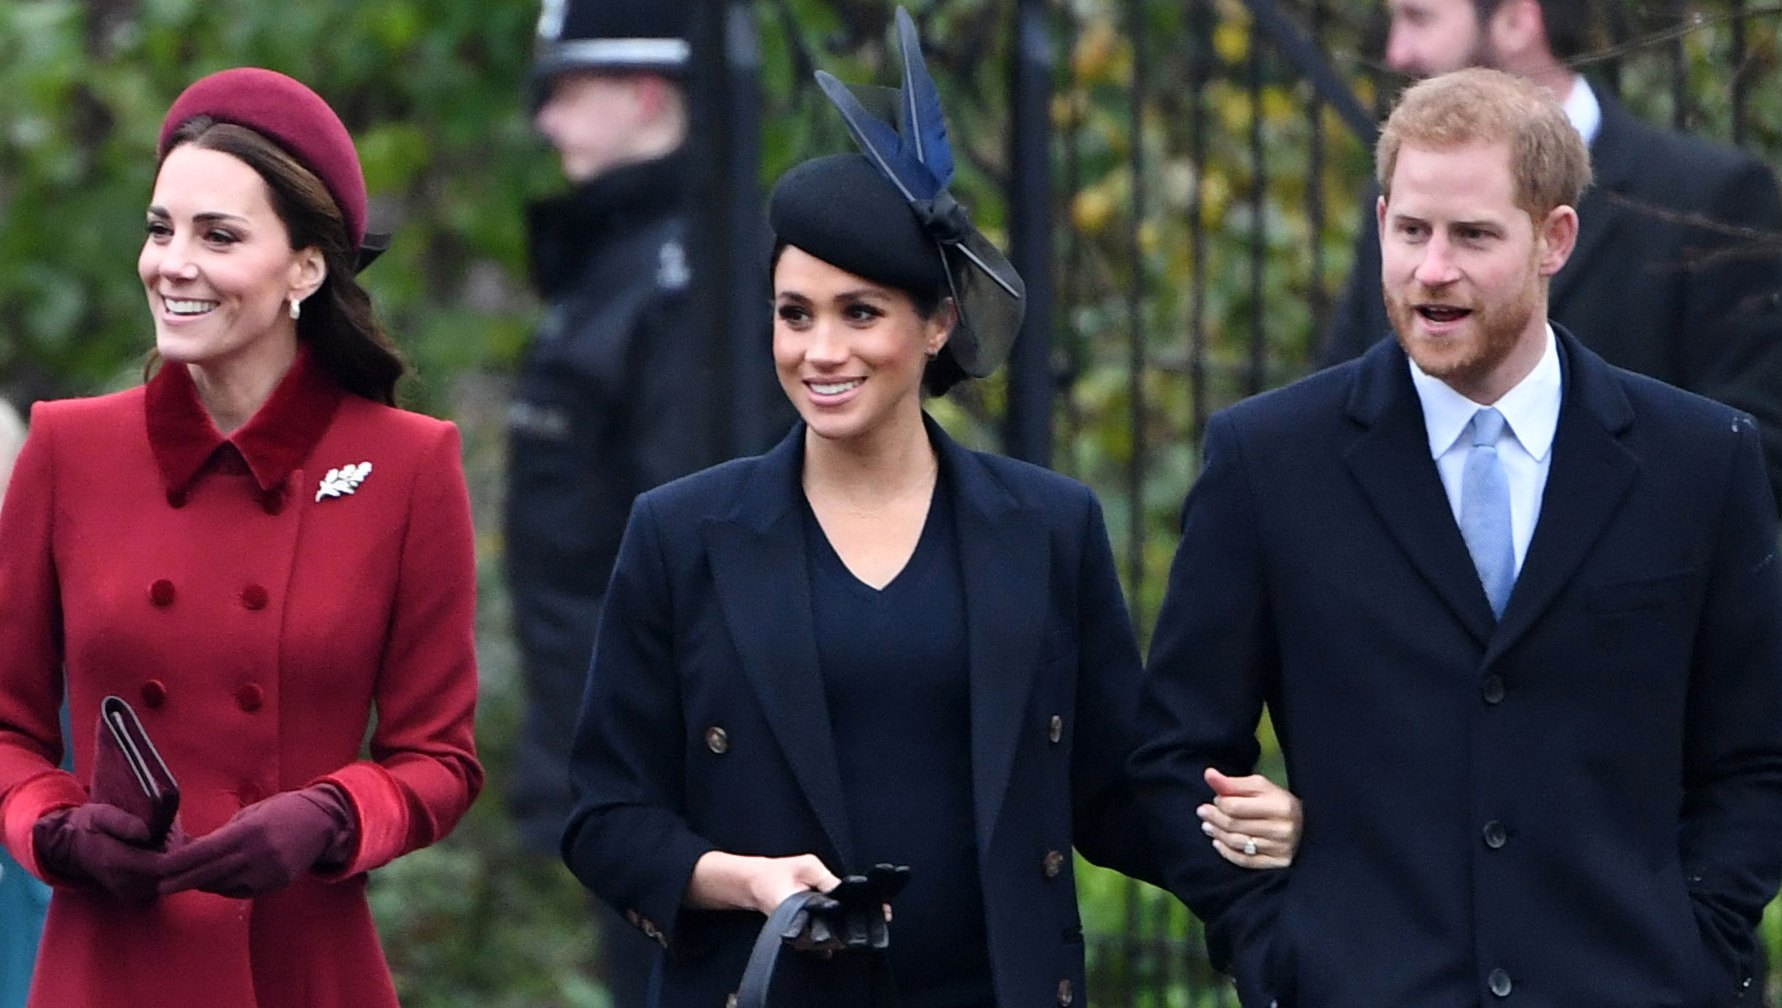 Duchess-Meghan-Prince-Harry-Did- Not-Attend-Kate- Middleton-Birthday